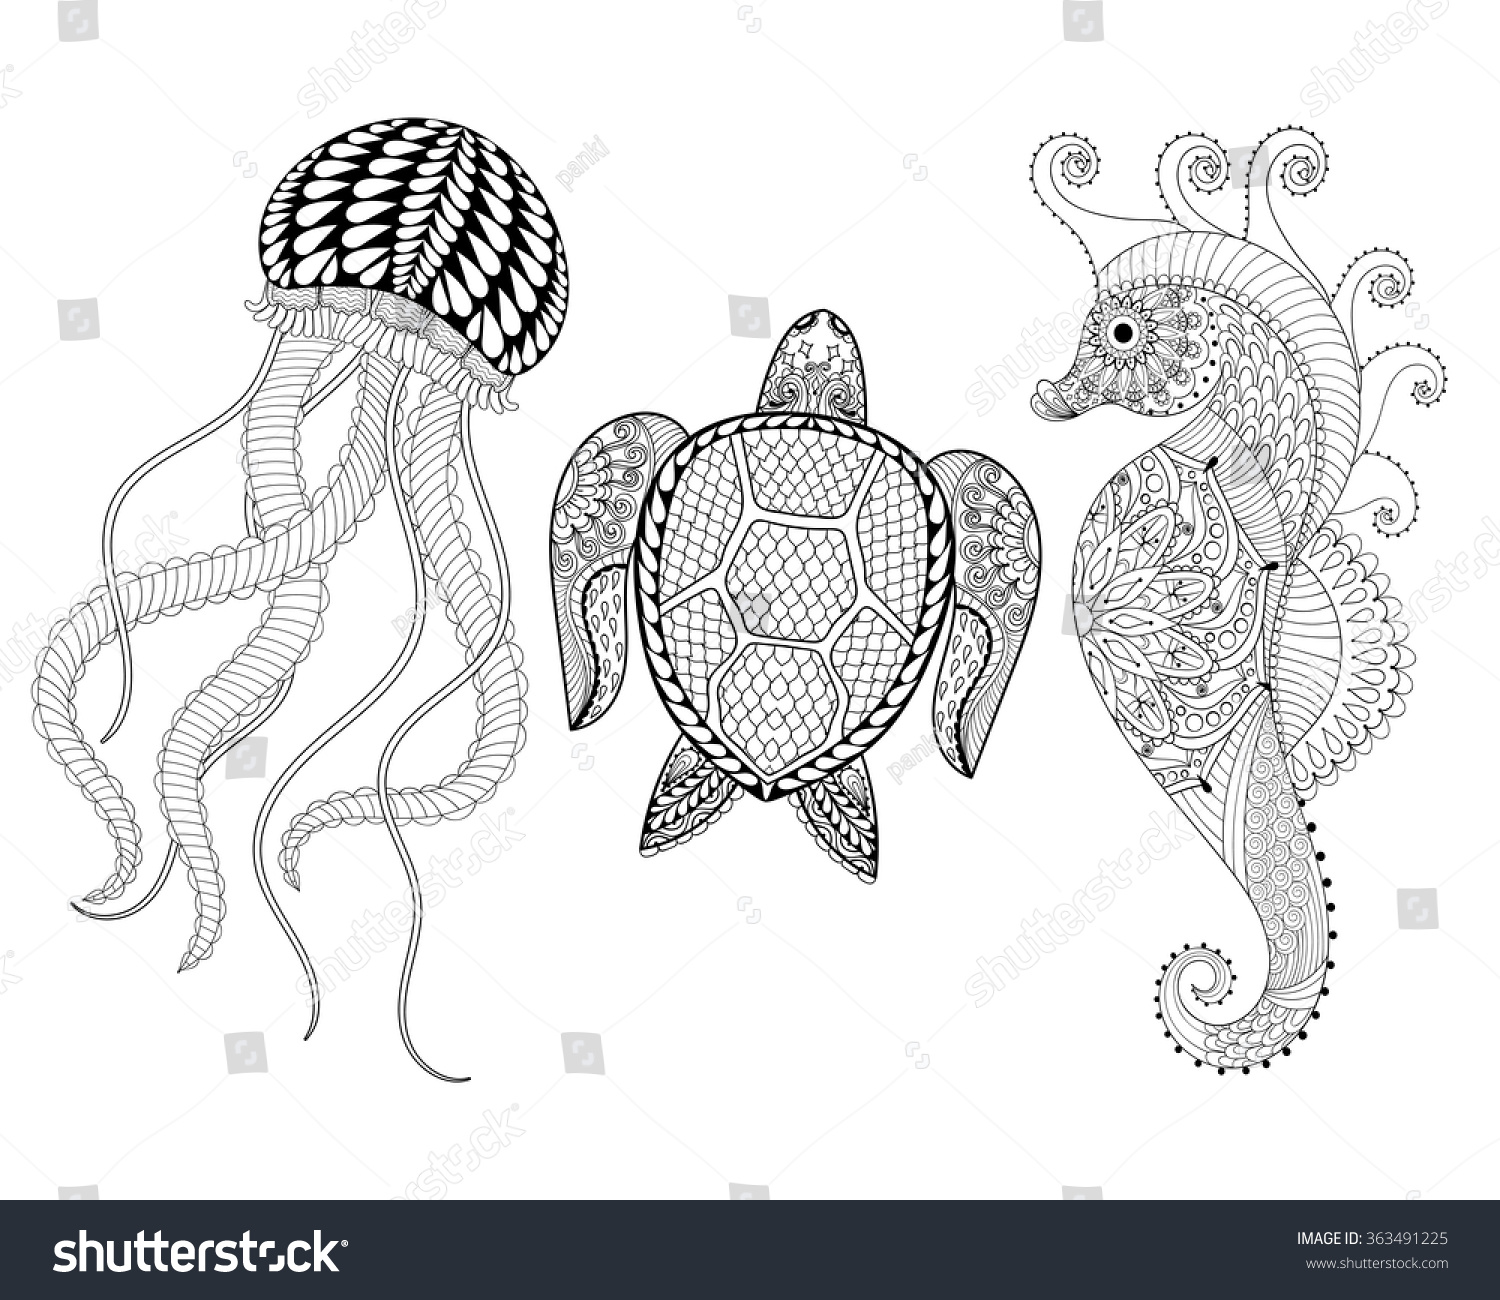 turtle coloring pages for adults - 1000 images about mermaids fish shells nautical on